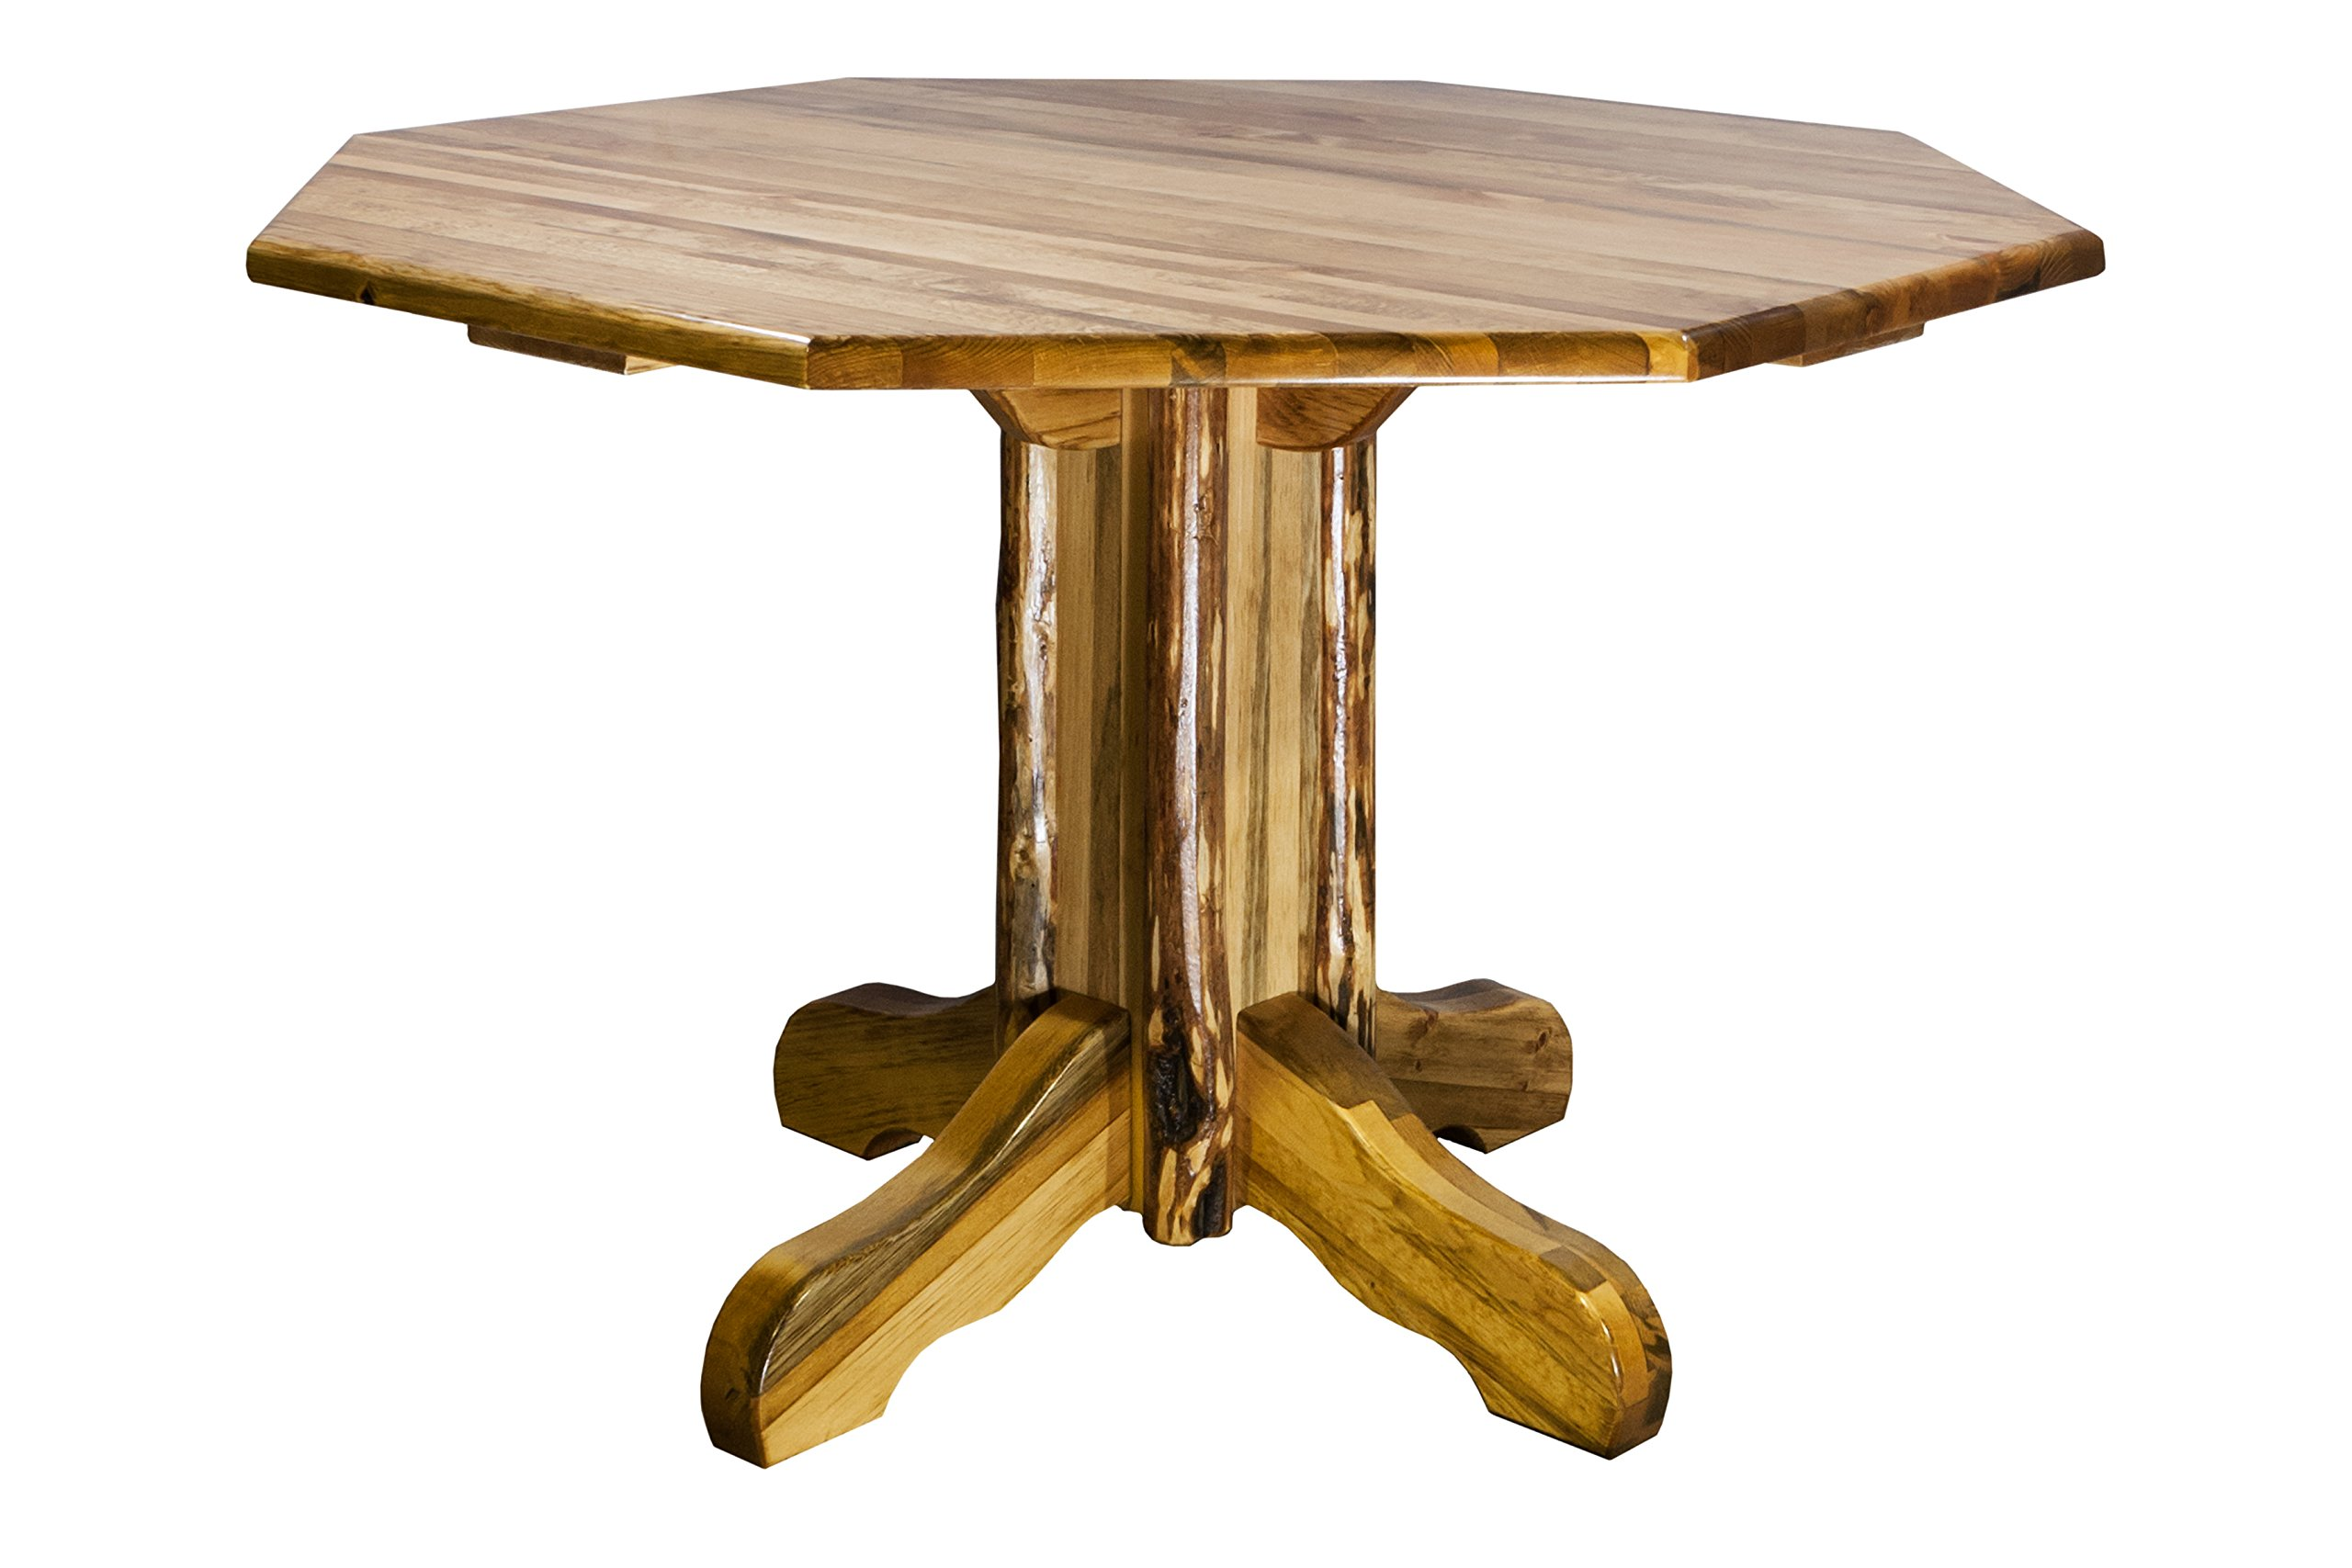 Montana Woodworks  Glacier Country Collection Center Pedestal Table with Octagonal Table Top by Montana Woodworks (Image #1)